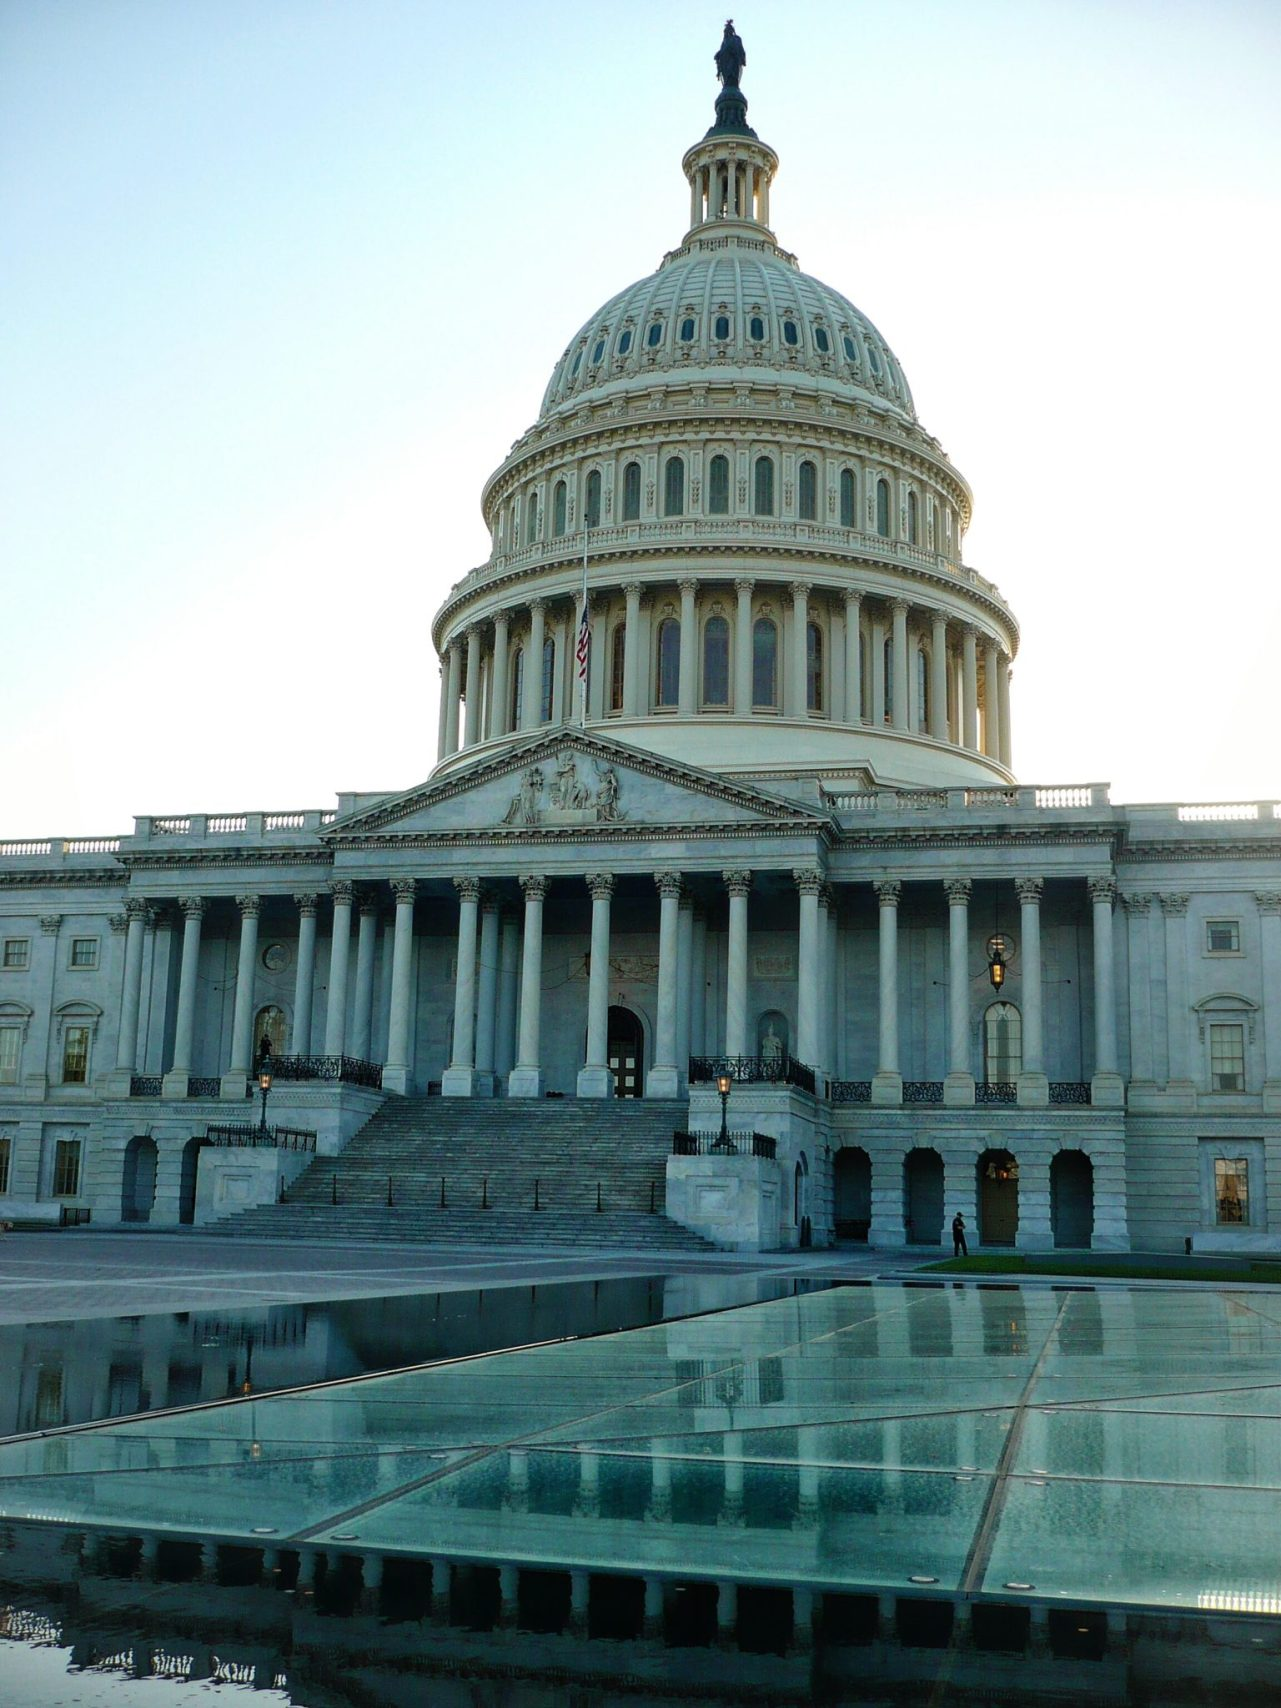 Capitol of the USA, Washington DC.